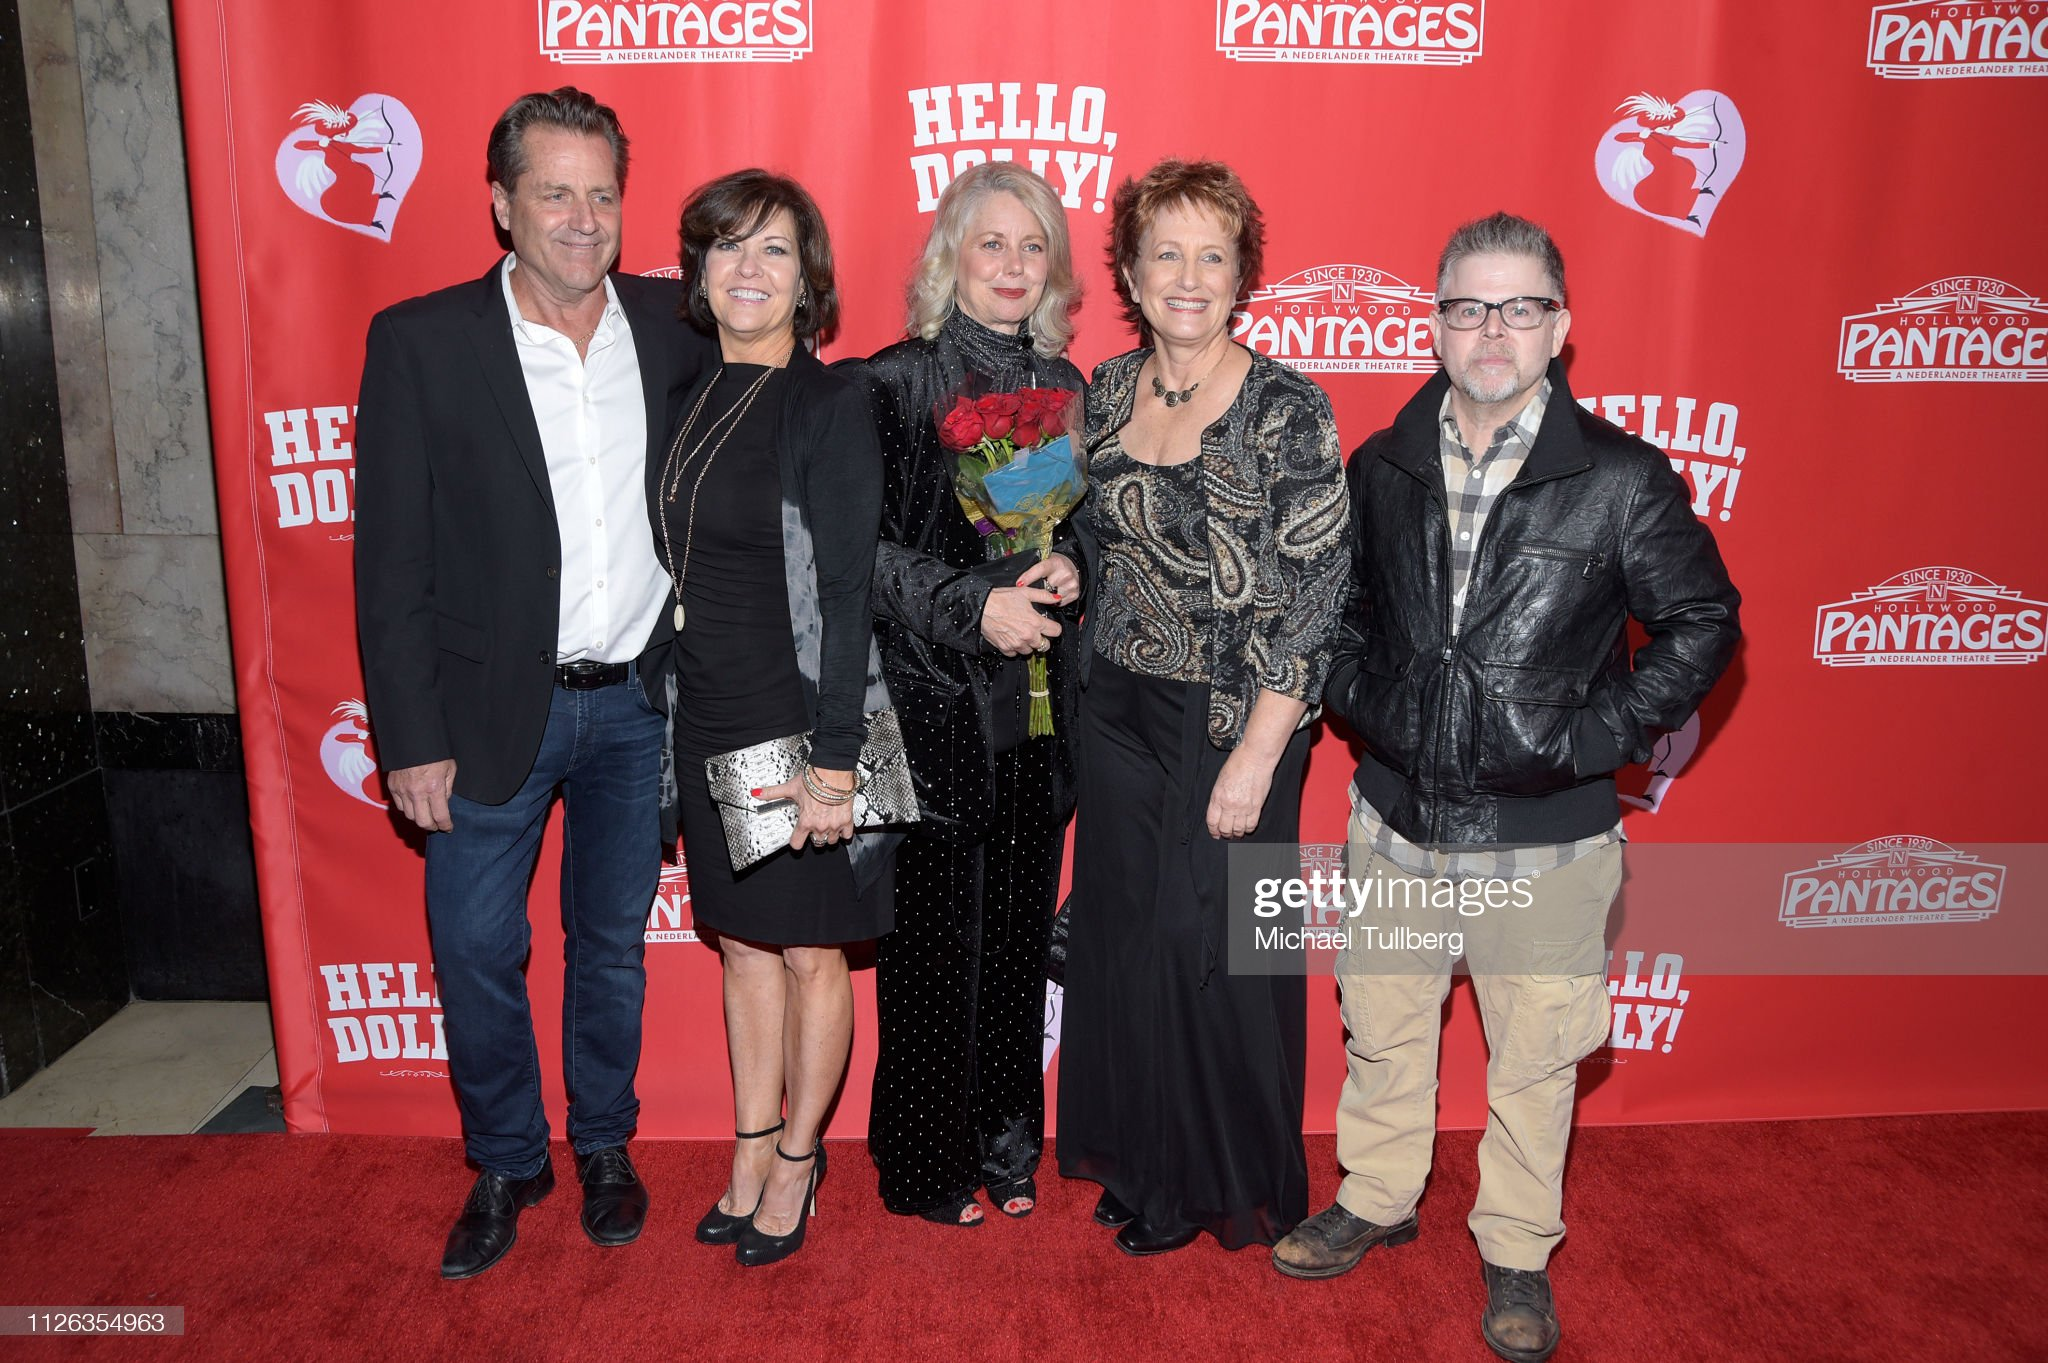 """Hello Dolly"" Los Angeles Premiere At The Hollywood Pantages Theatre : News Photo"